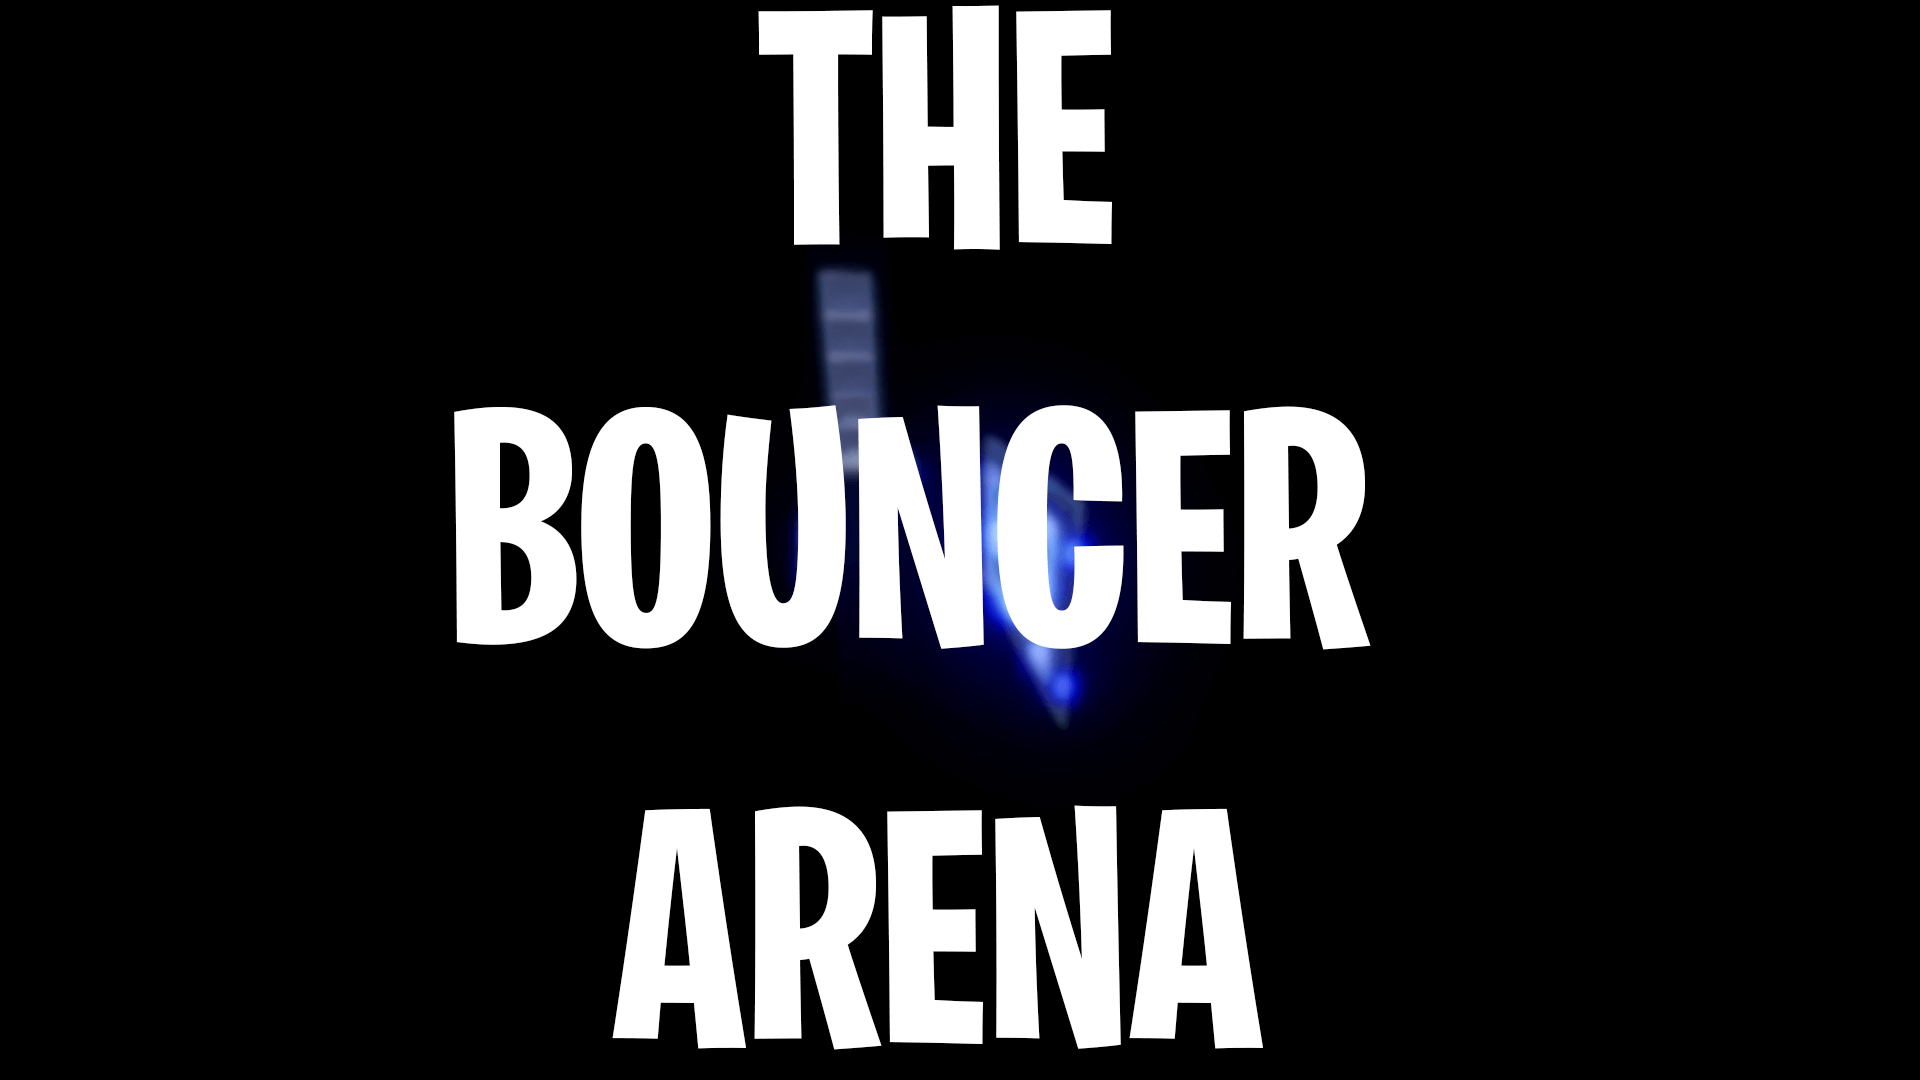 THE BOUNCER ARENA